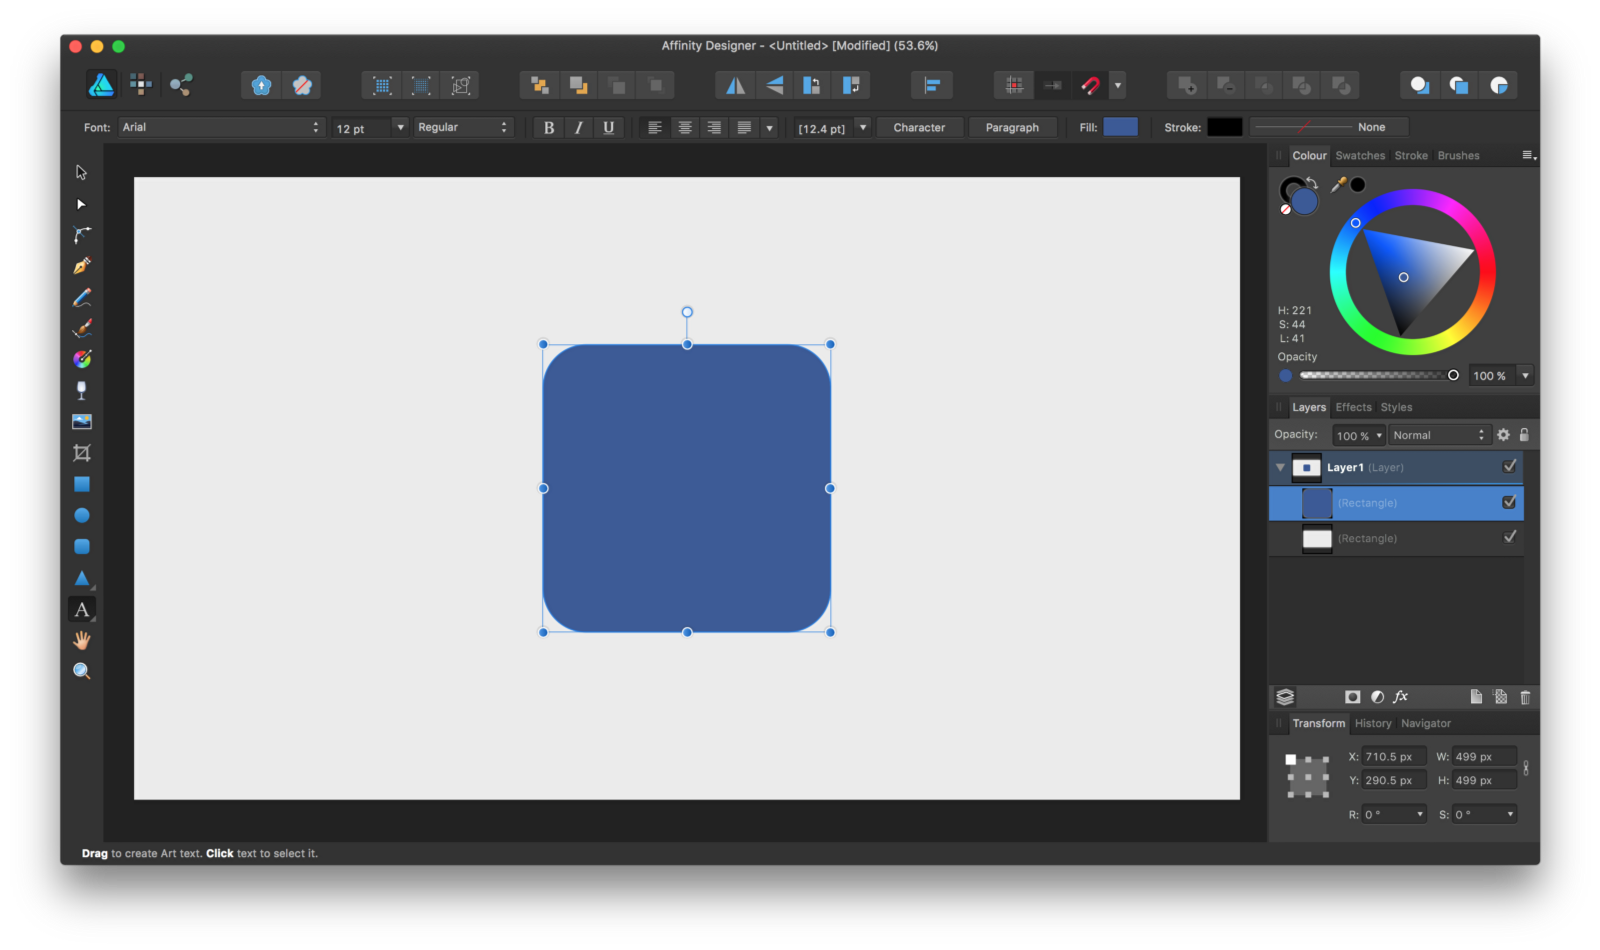 Vector designer affinity. Creating flat icons in